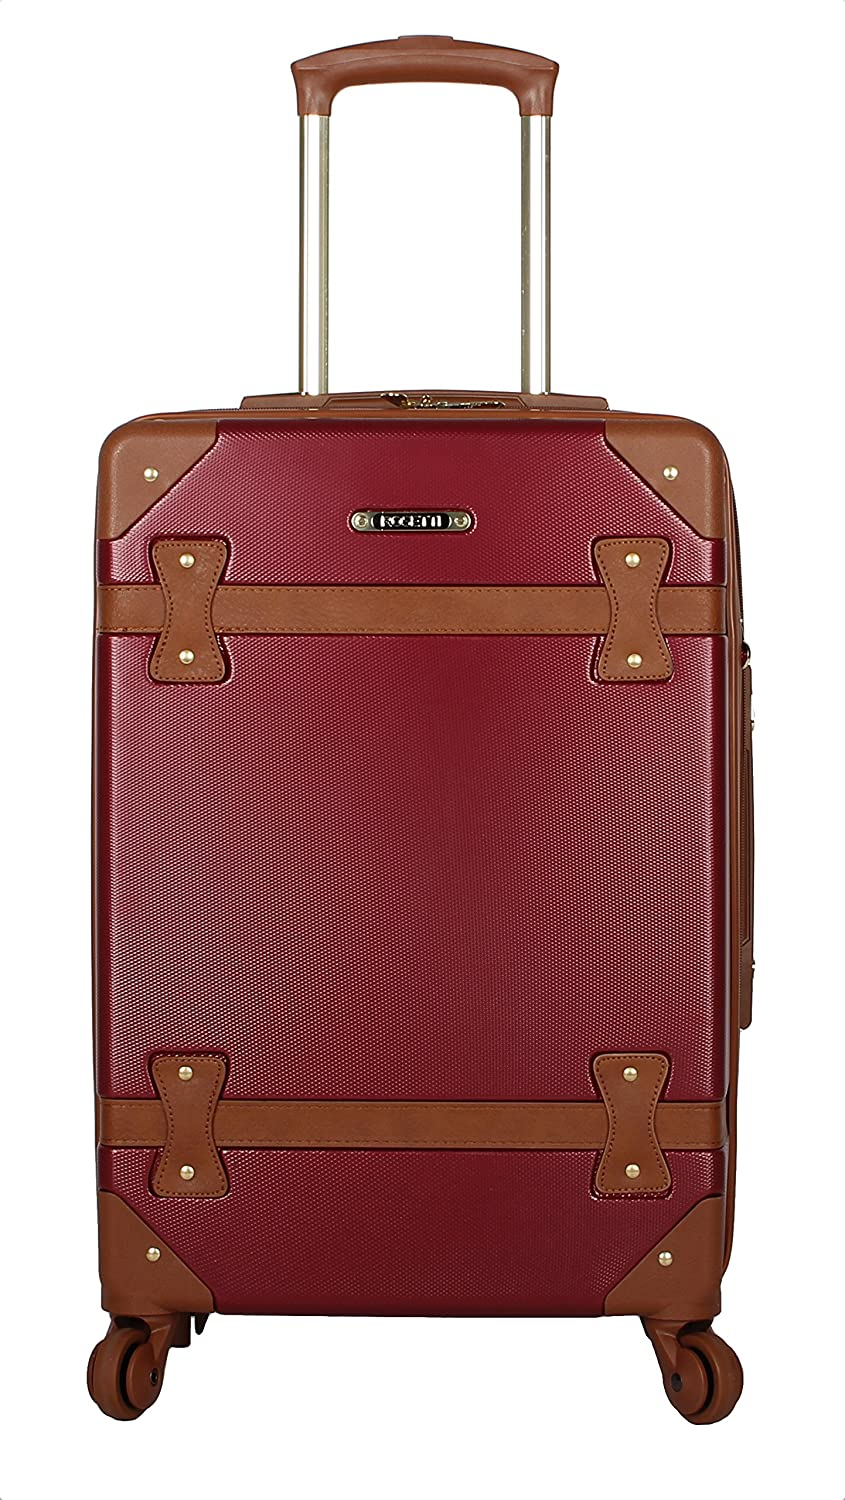 Rosetti Luggage Carry On Expandable Hardside Suitcase With Spinner Wheels 20in, Burgundy